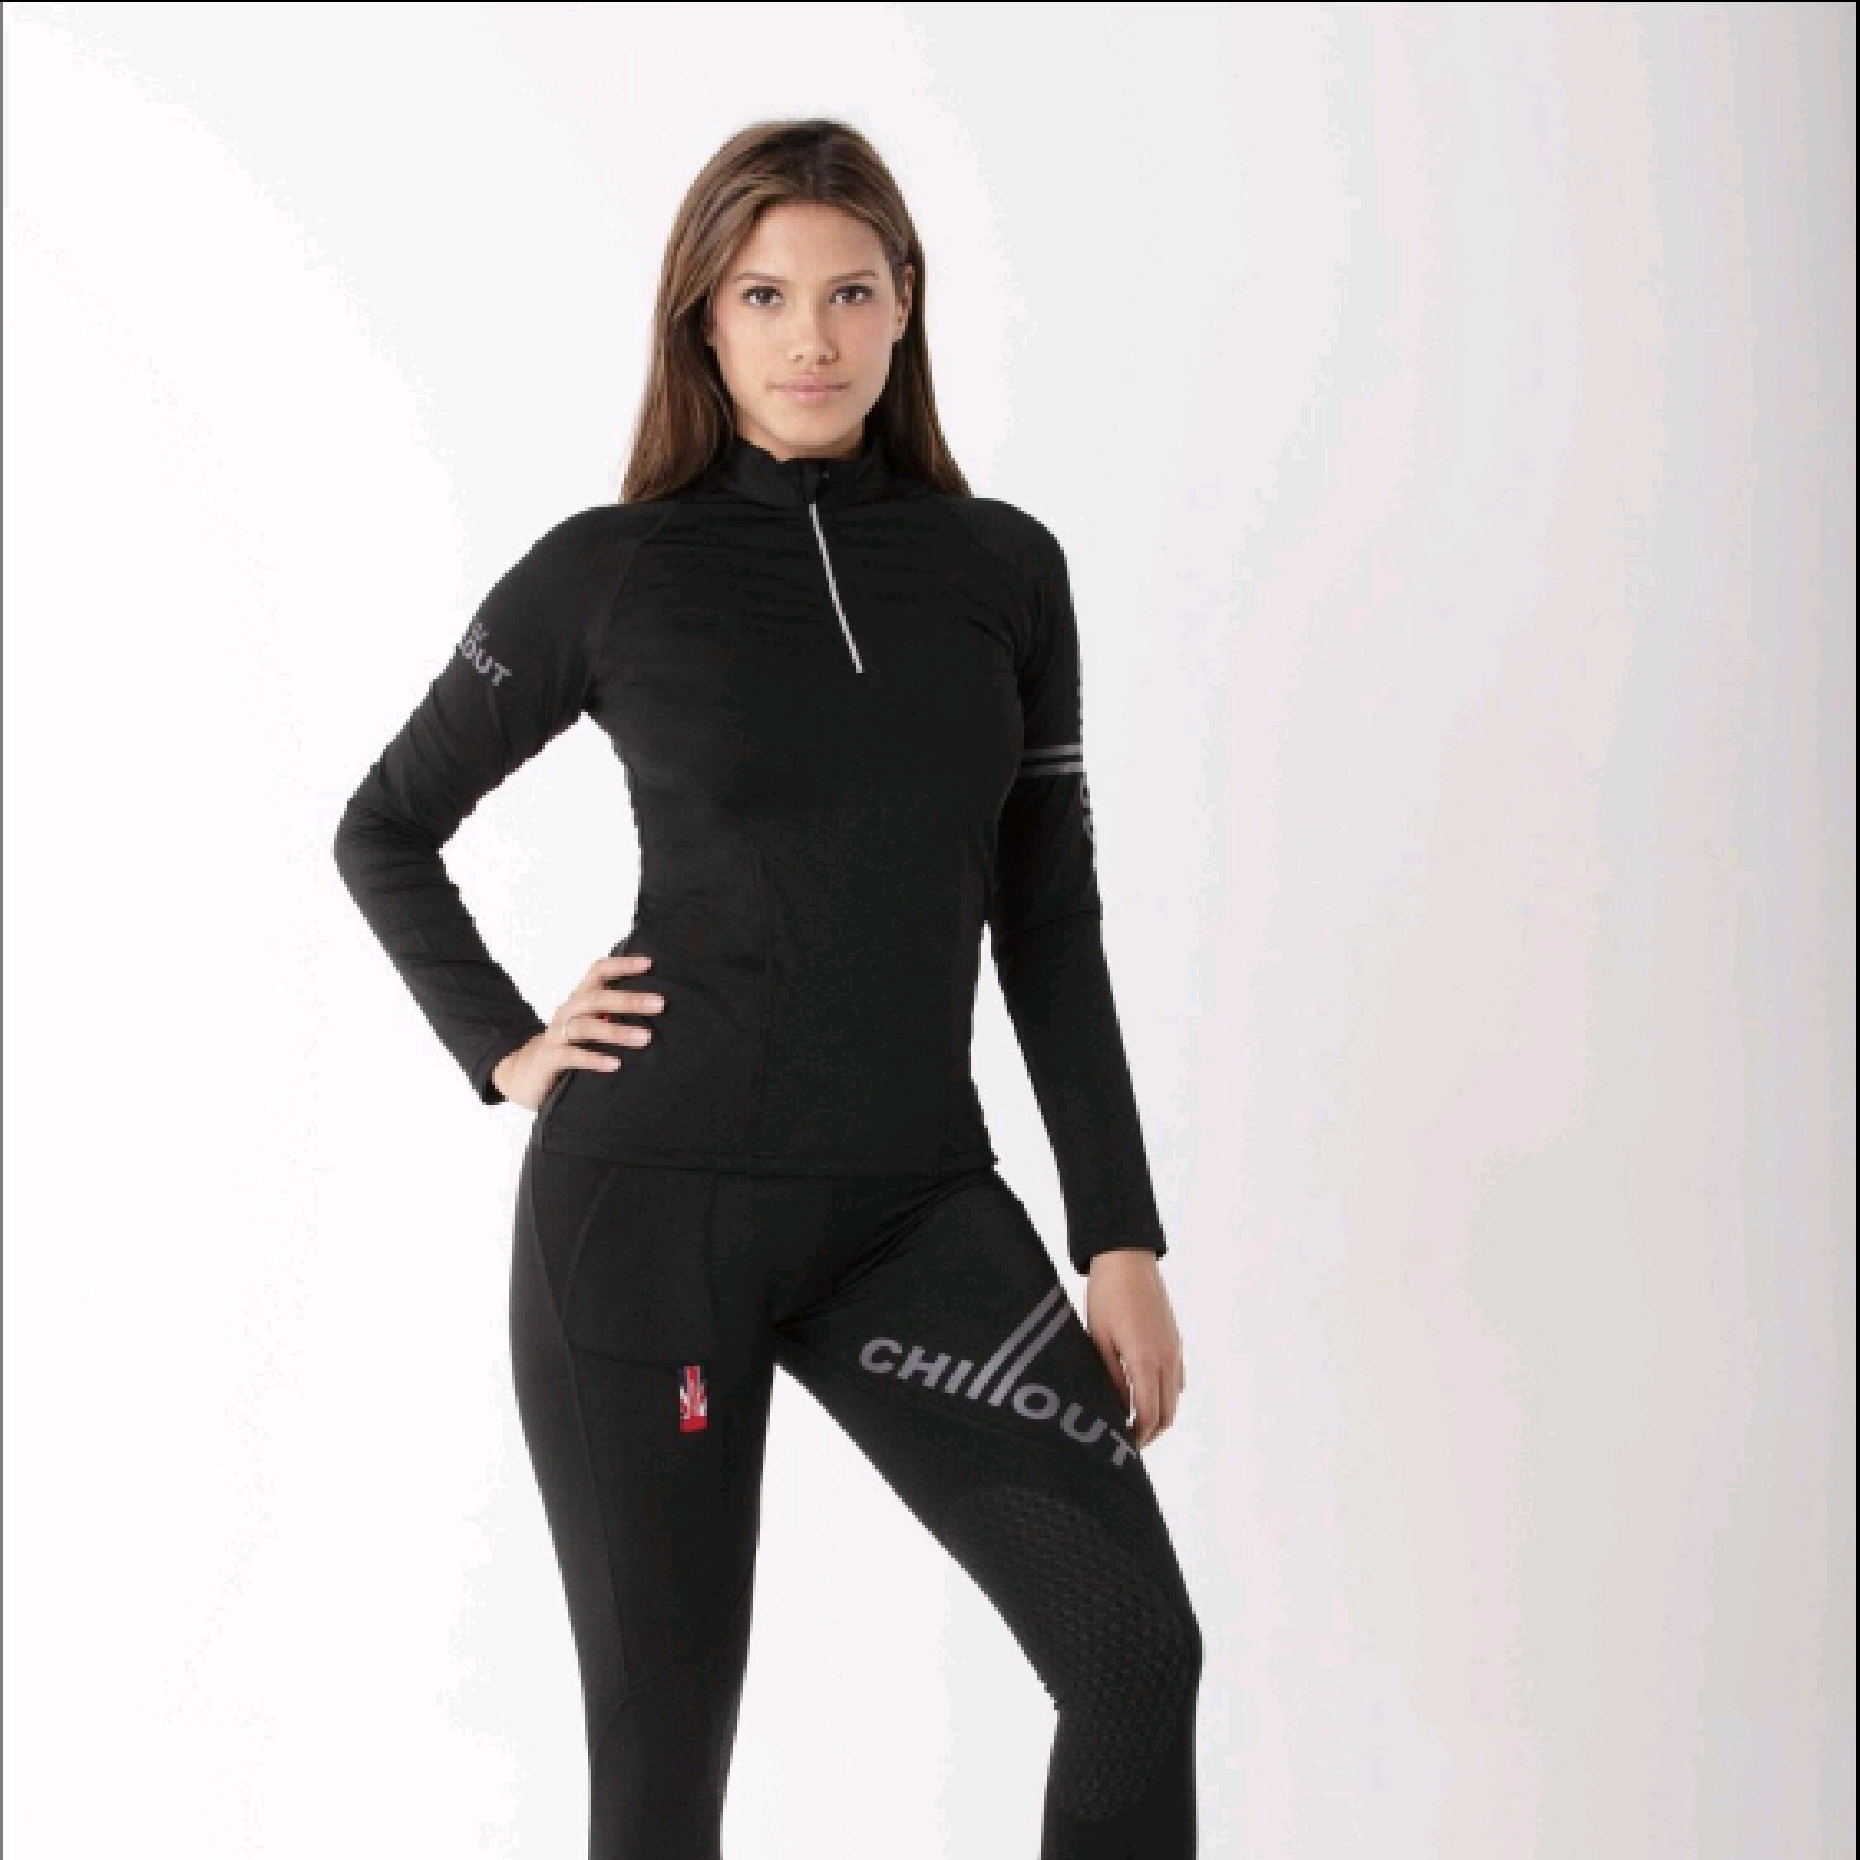 Chillout Black Baselayer Top